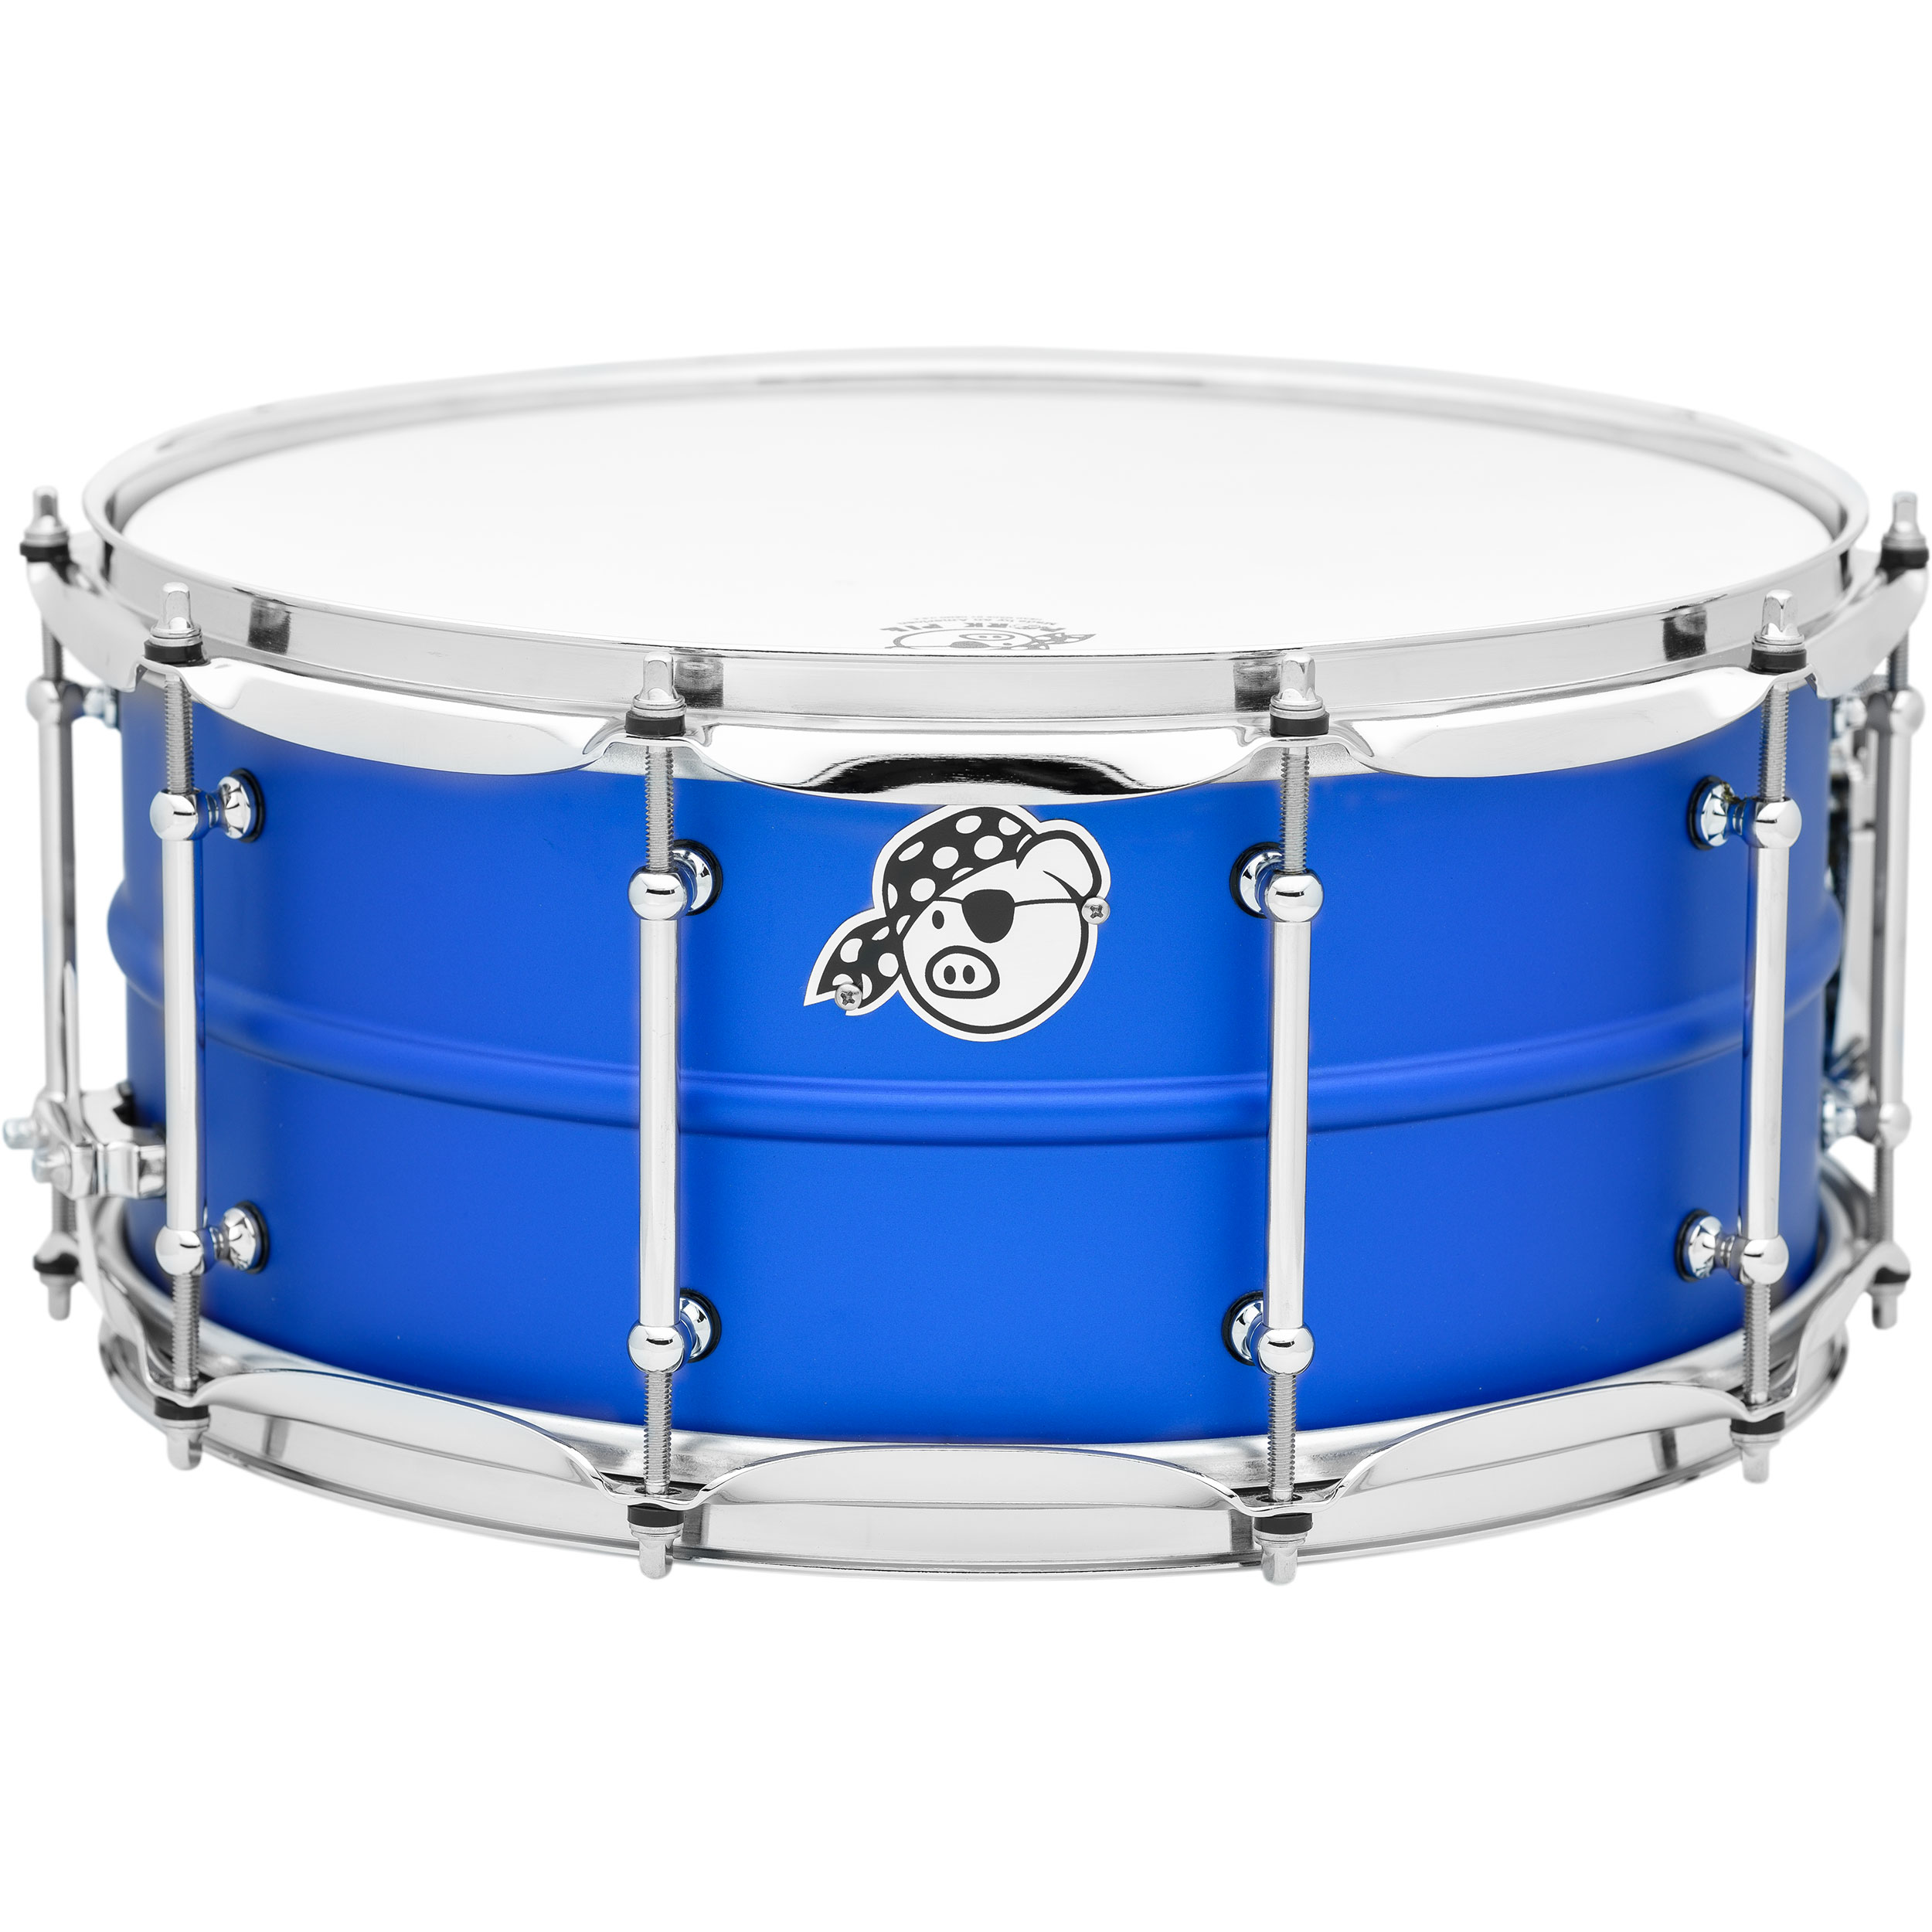 "Pork Pie Percussion 6.5"" x 14"" Seamless Aluminum Snare Drum Dodger Blue"